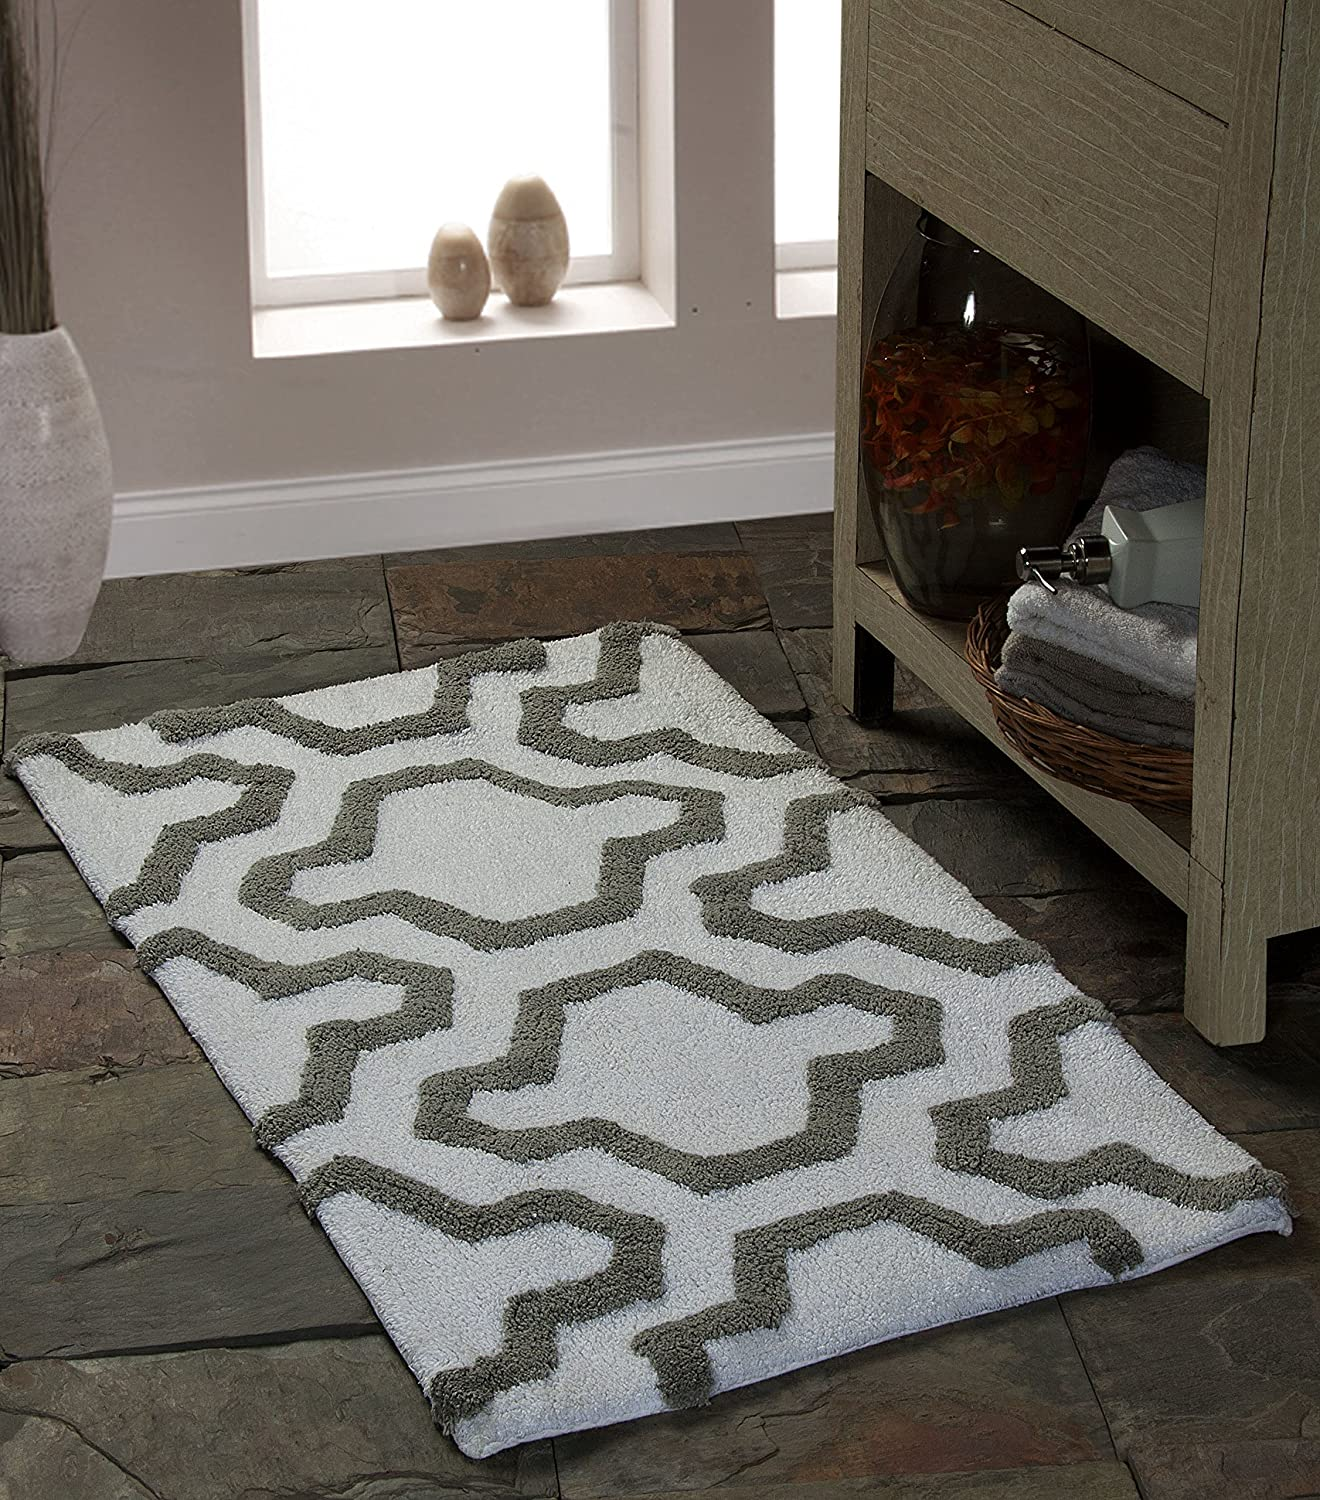 Saffron Fabs Bath Rug 100% Soft Cotton, Size 50x30 Inch, Latex Spray Non-Skid Backing, White/Grey Color, Geometric Pattern, Hand Tufted, Heavy 190 GSF Weight, Machine Washable, Rectangular Shape